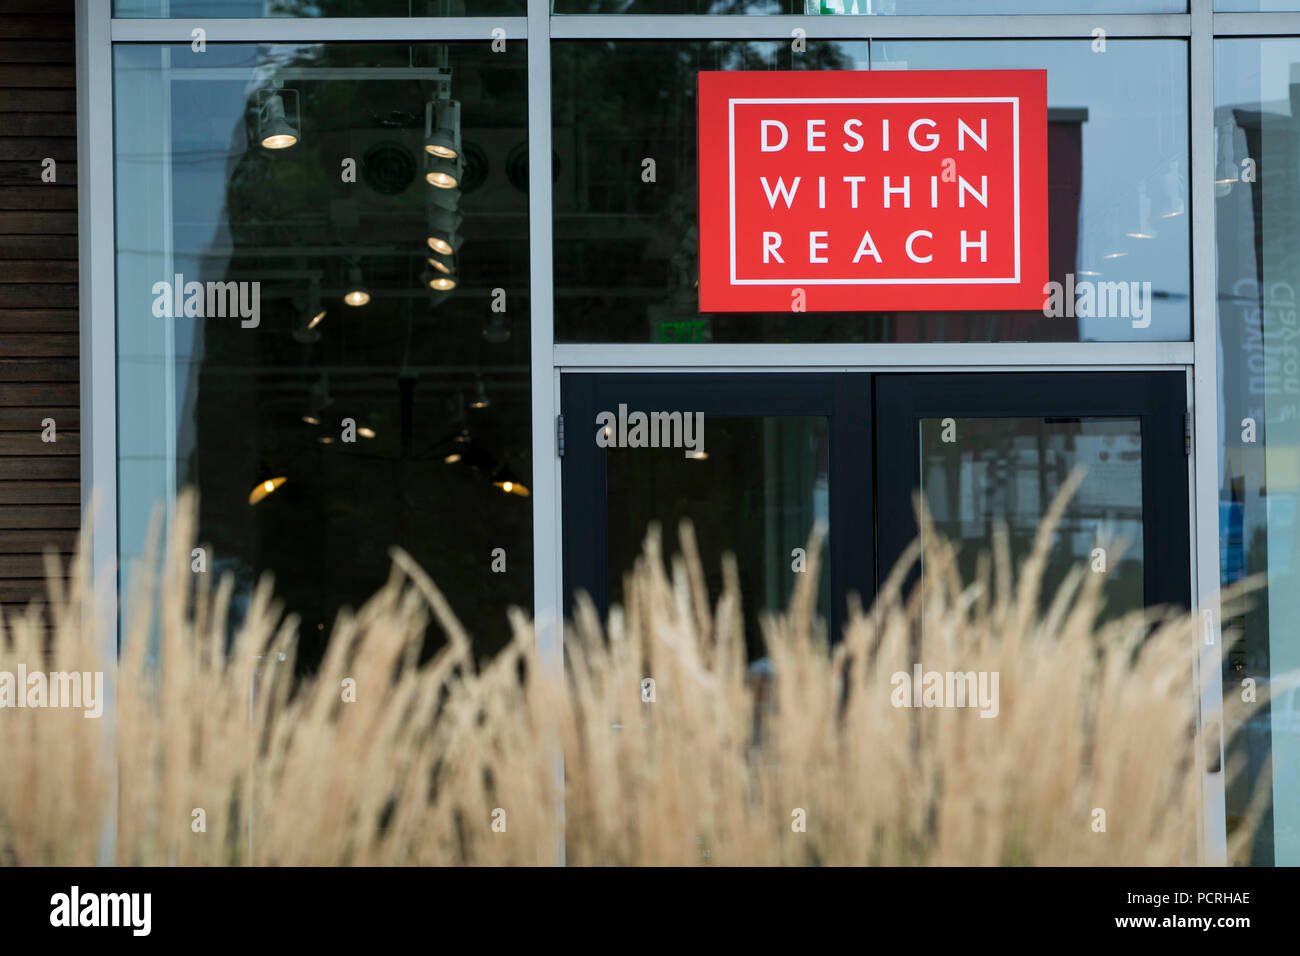 A logo sign outside of a Design Within Reach retail store location in Denver, Colorado, on July 23, 2018. - Stock Image